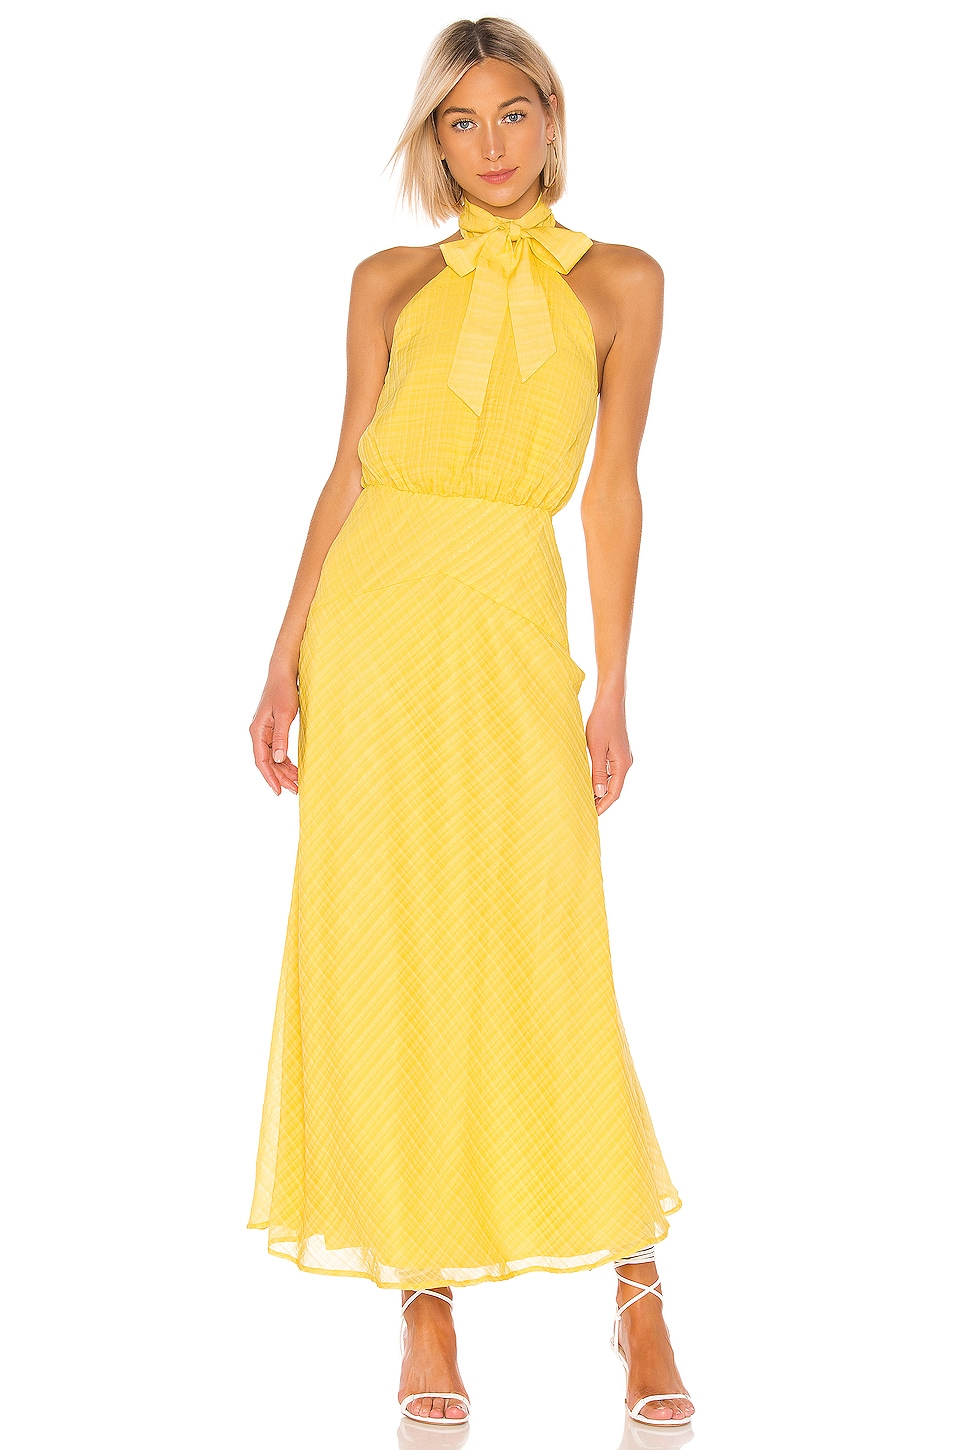 House of Harlow 1960 X REVOLVE Rafaela Maxi Dress in Yellow